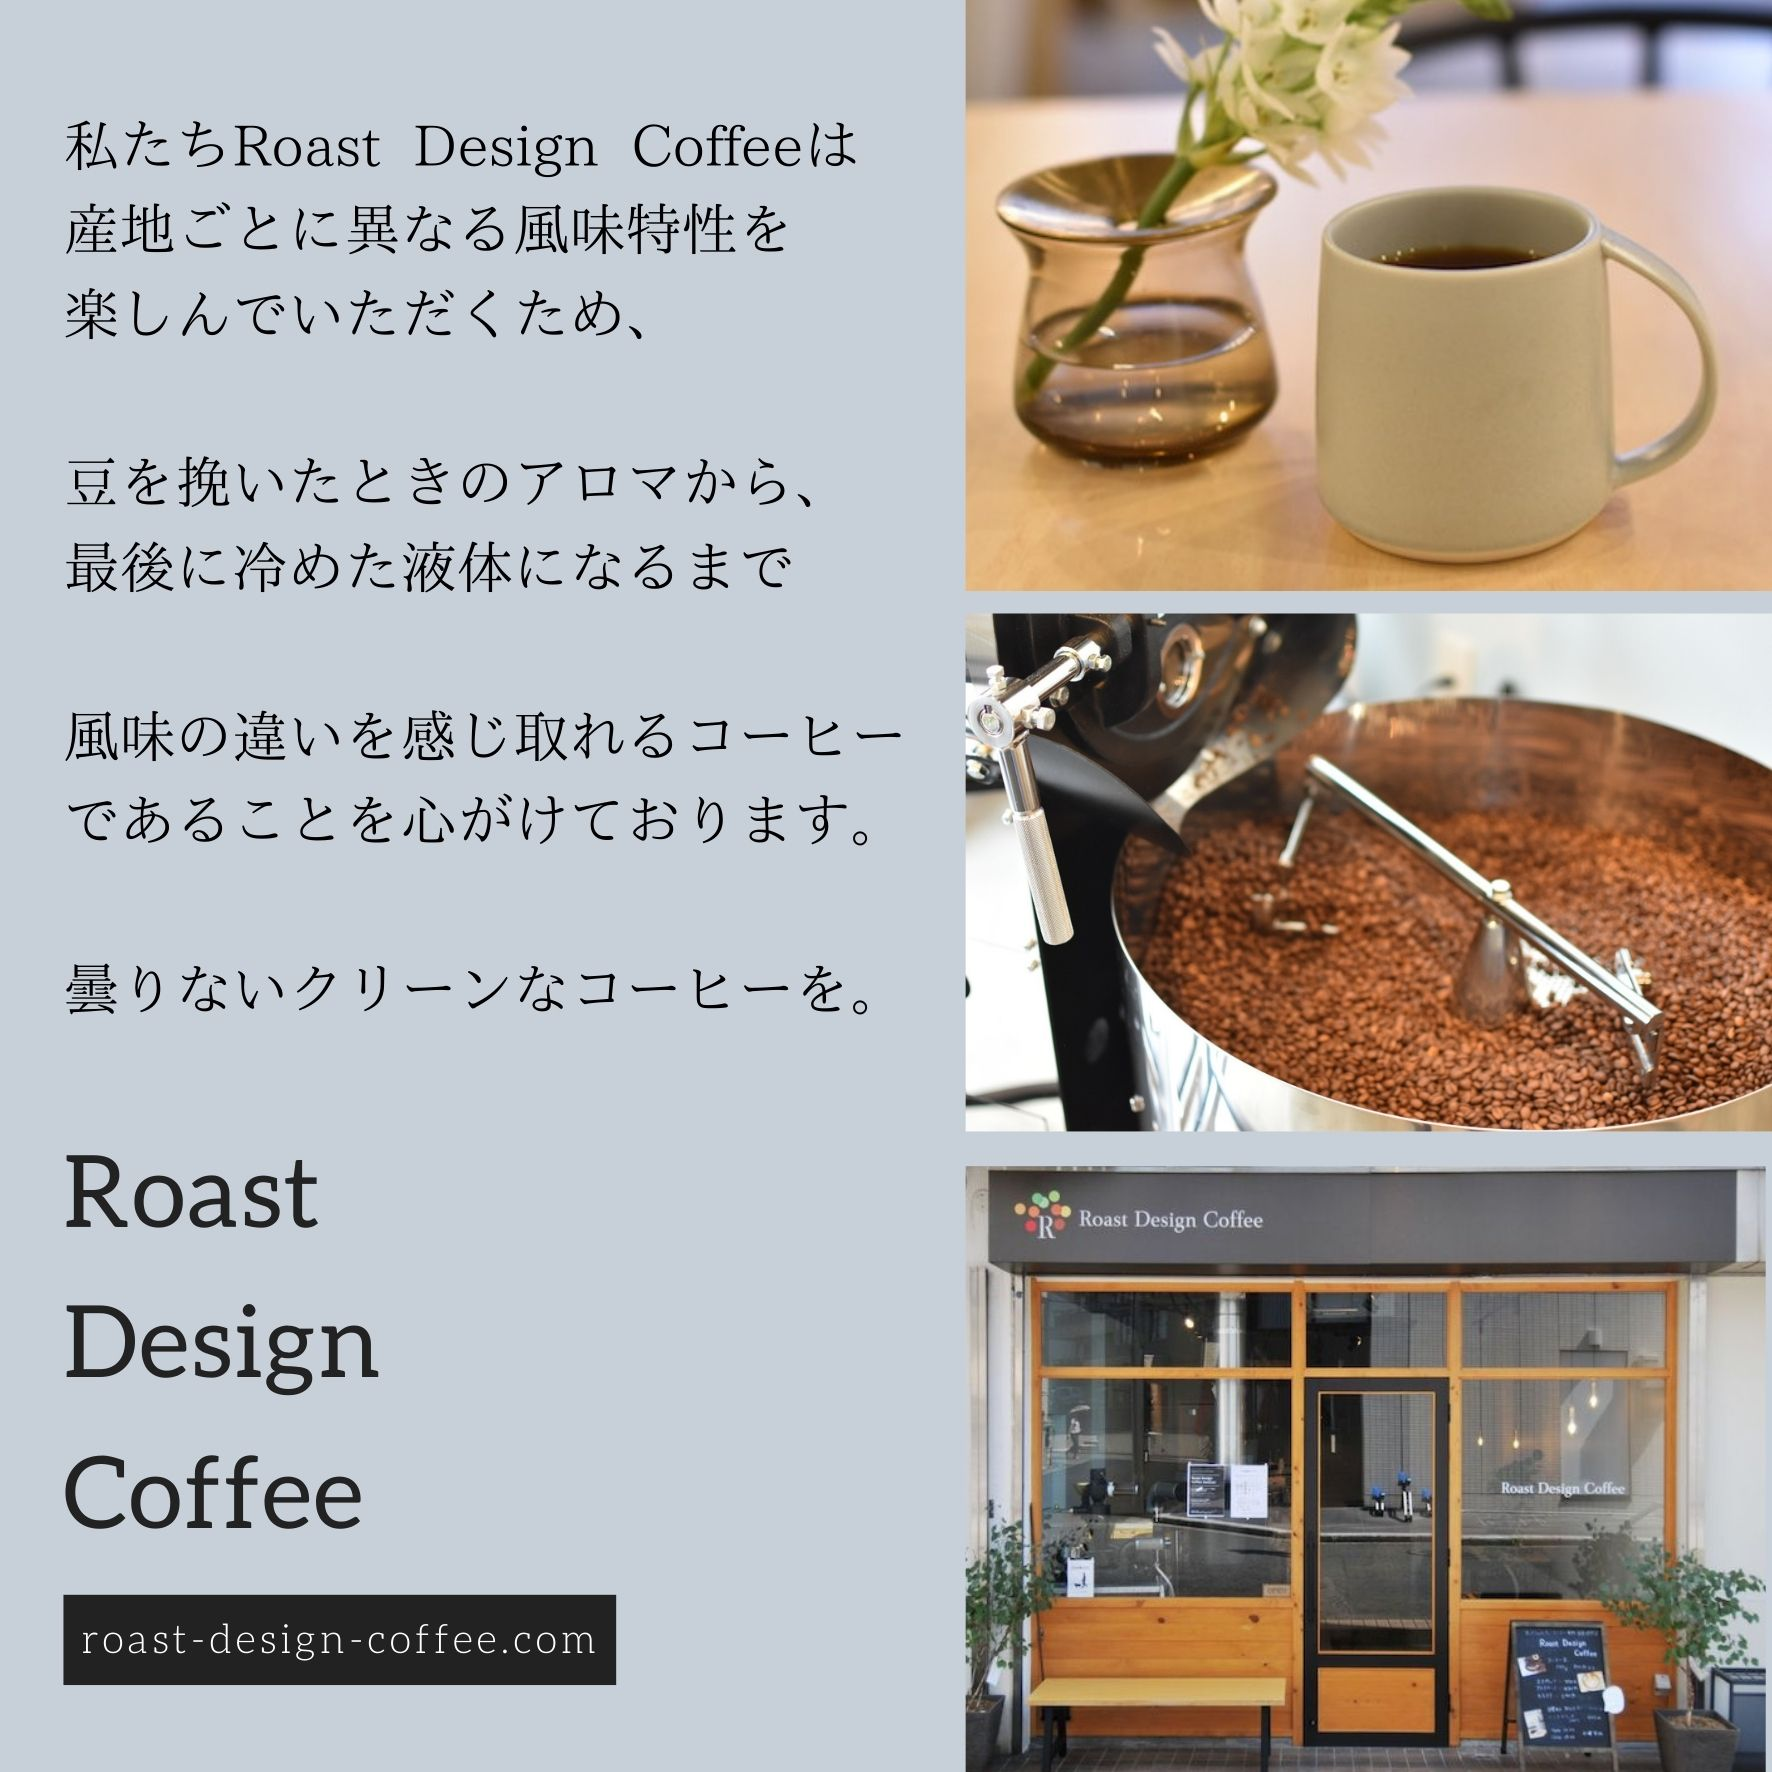 Roast Design Coffee